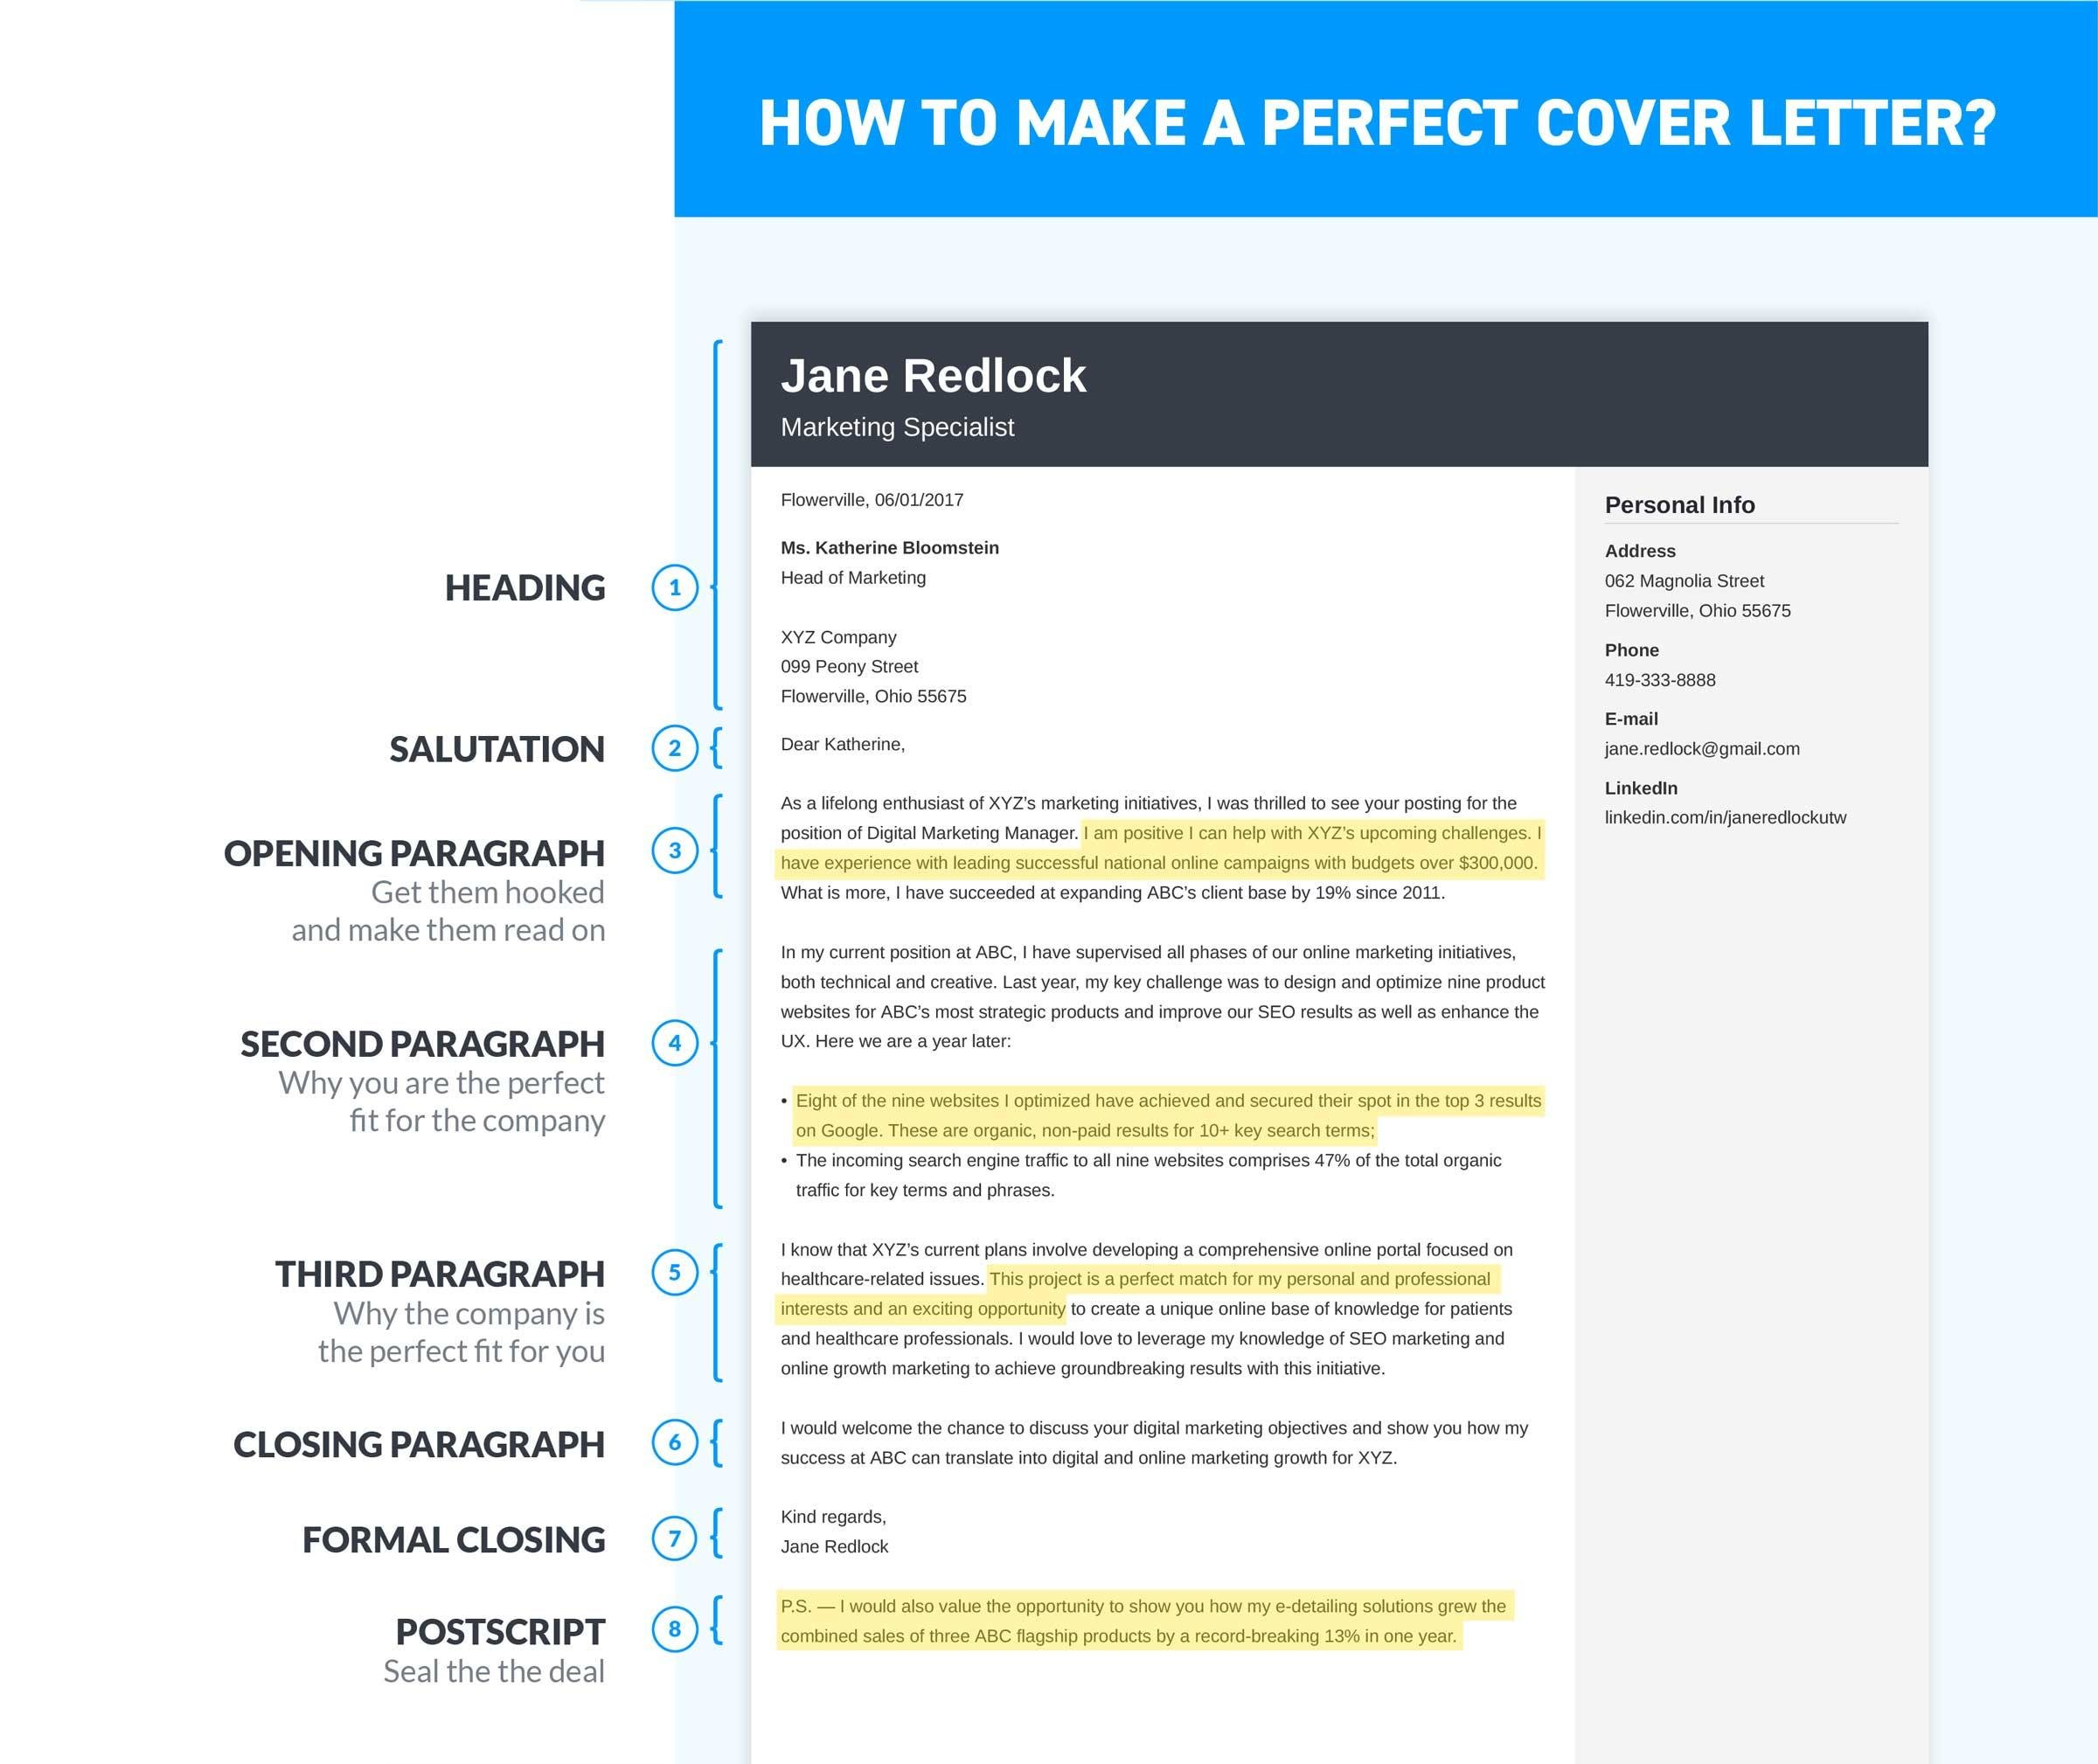 Cover Letter For New Job With No Experience, How To Make A Perfect Cover Letter Infographic, Cover Letter For New Job With No Experience